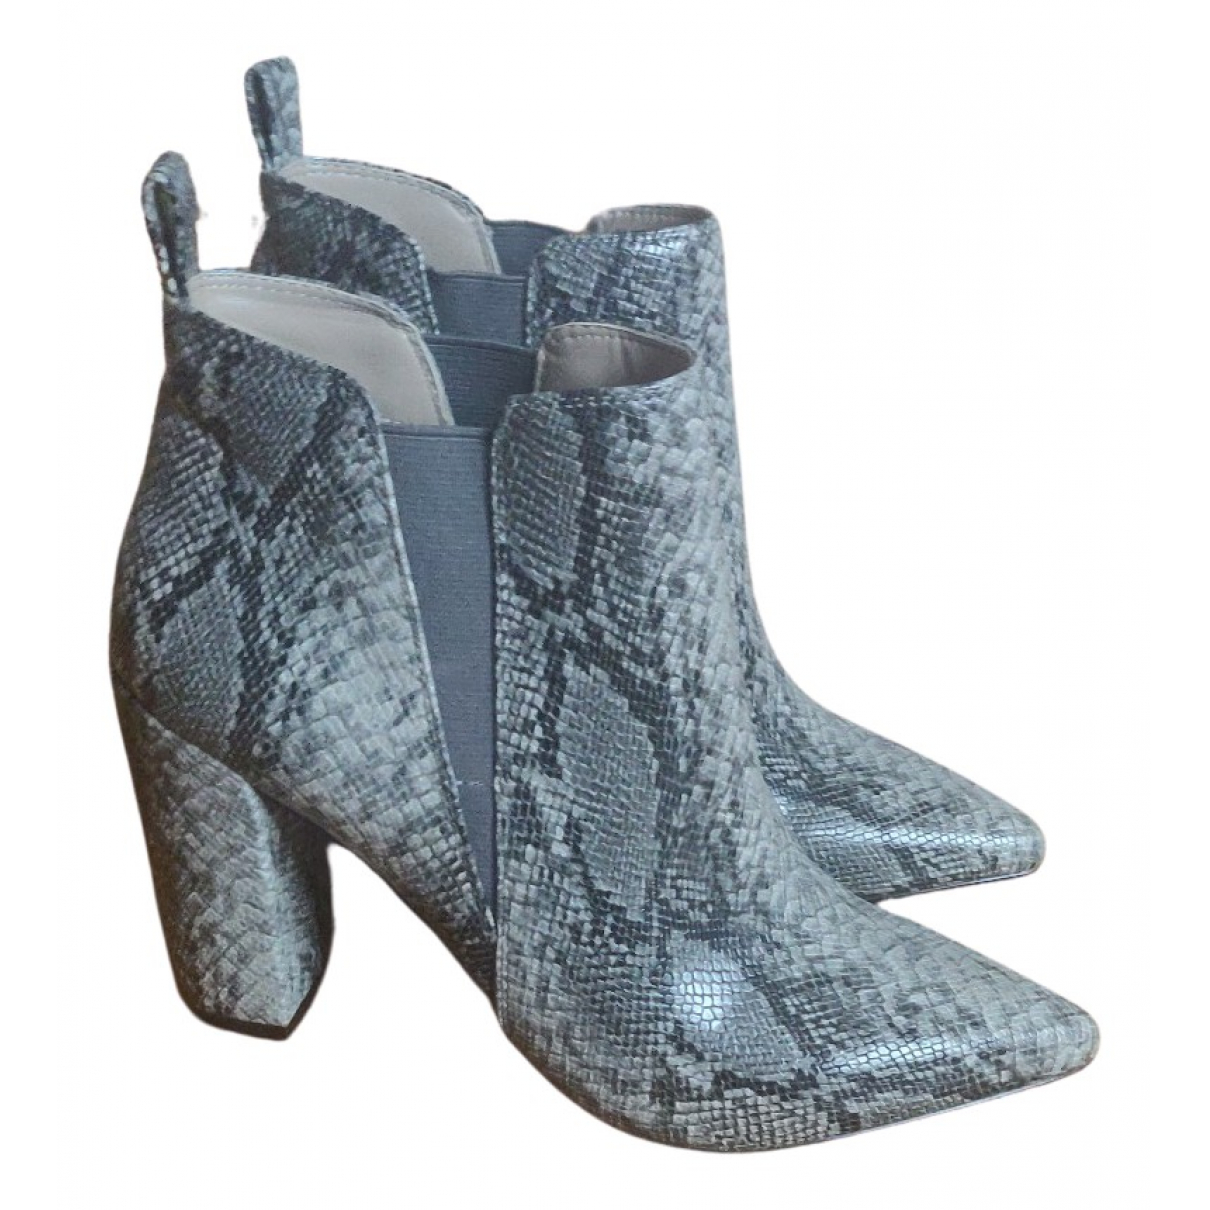 Bcbg Max Azria N Grey Leather Ankle boots for Women 8 US